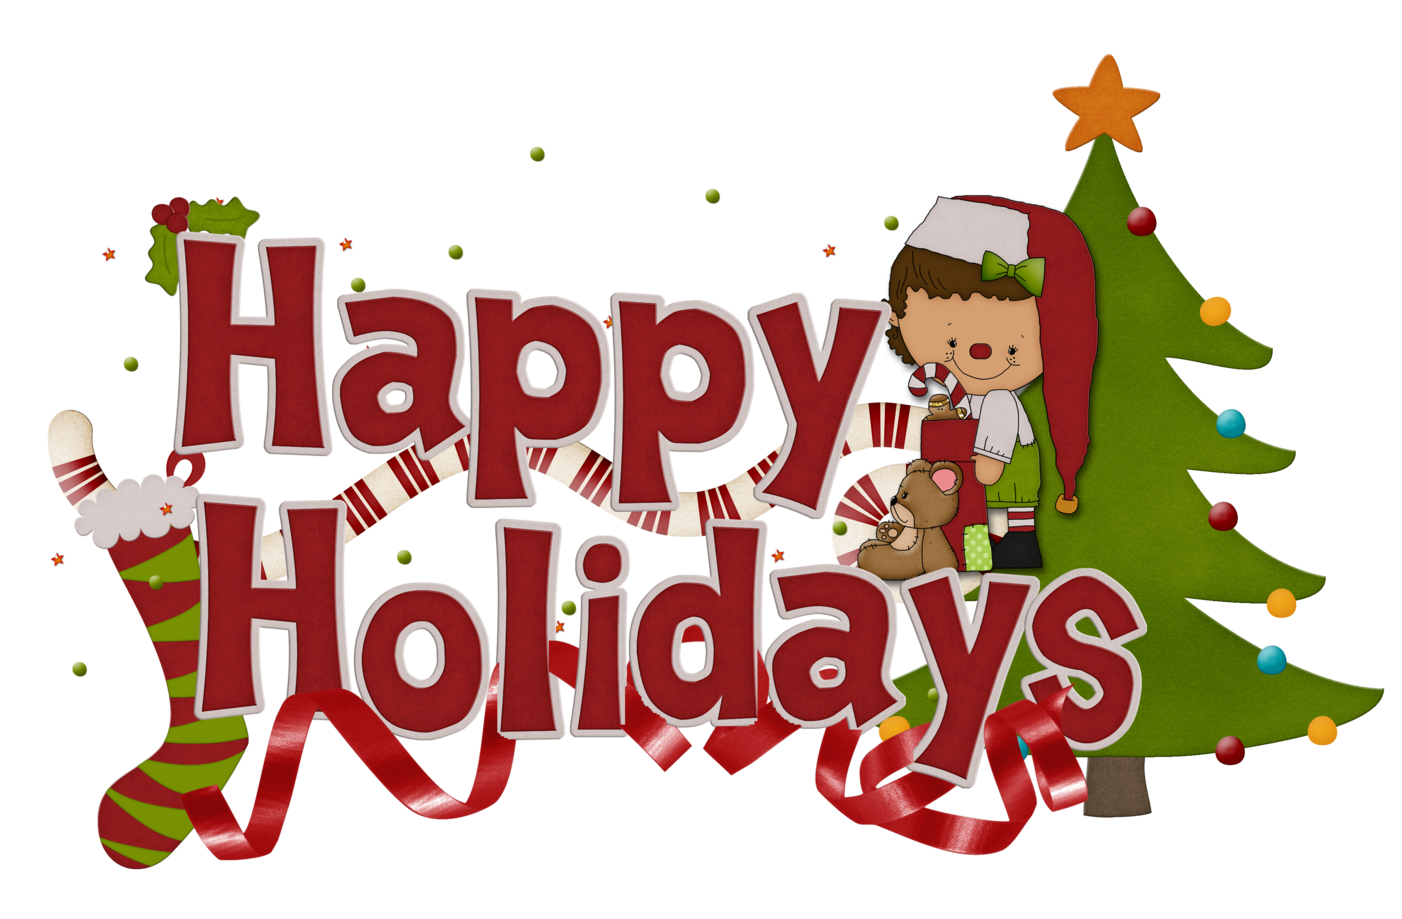 Happy holidays pictures clipart free stock Holiday clipart happy hour #5 | Christmas | Happy holidays clip art ... free stock